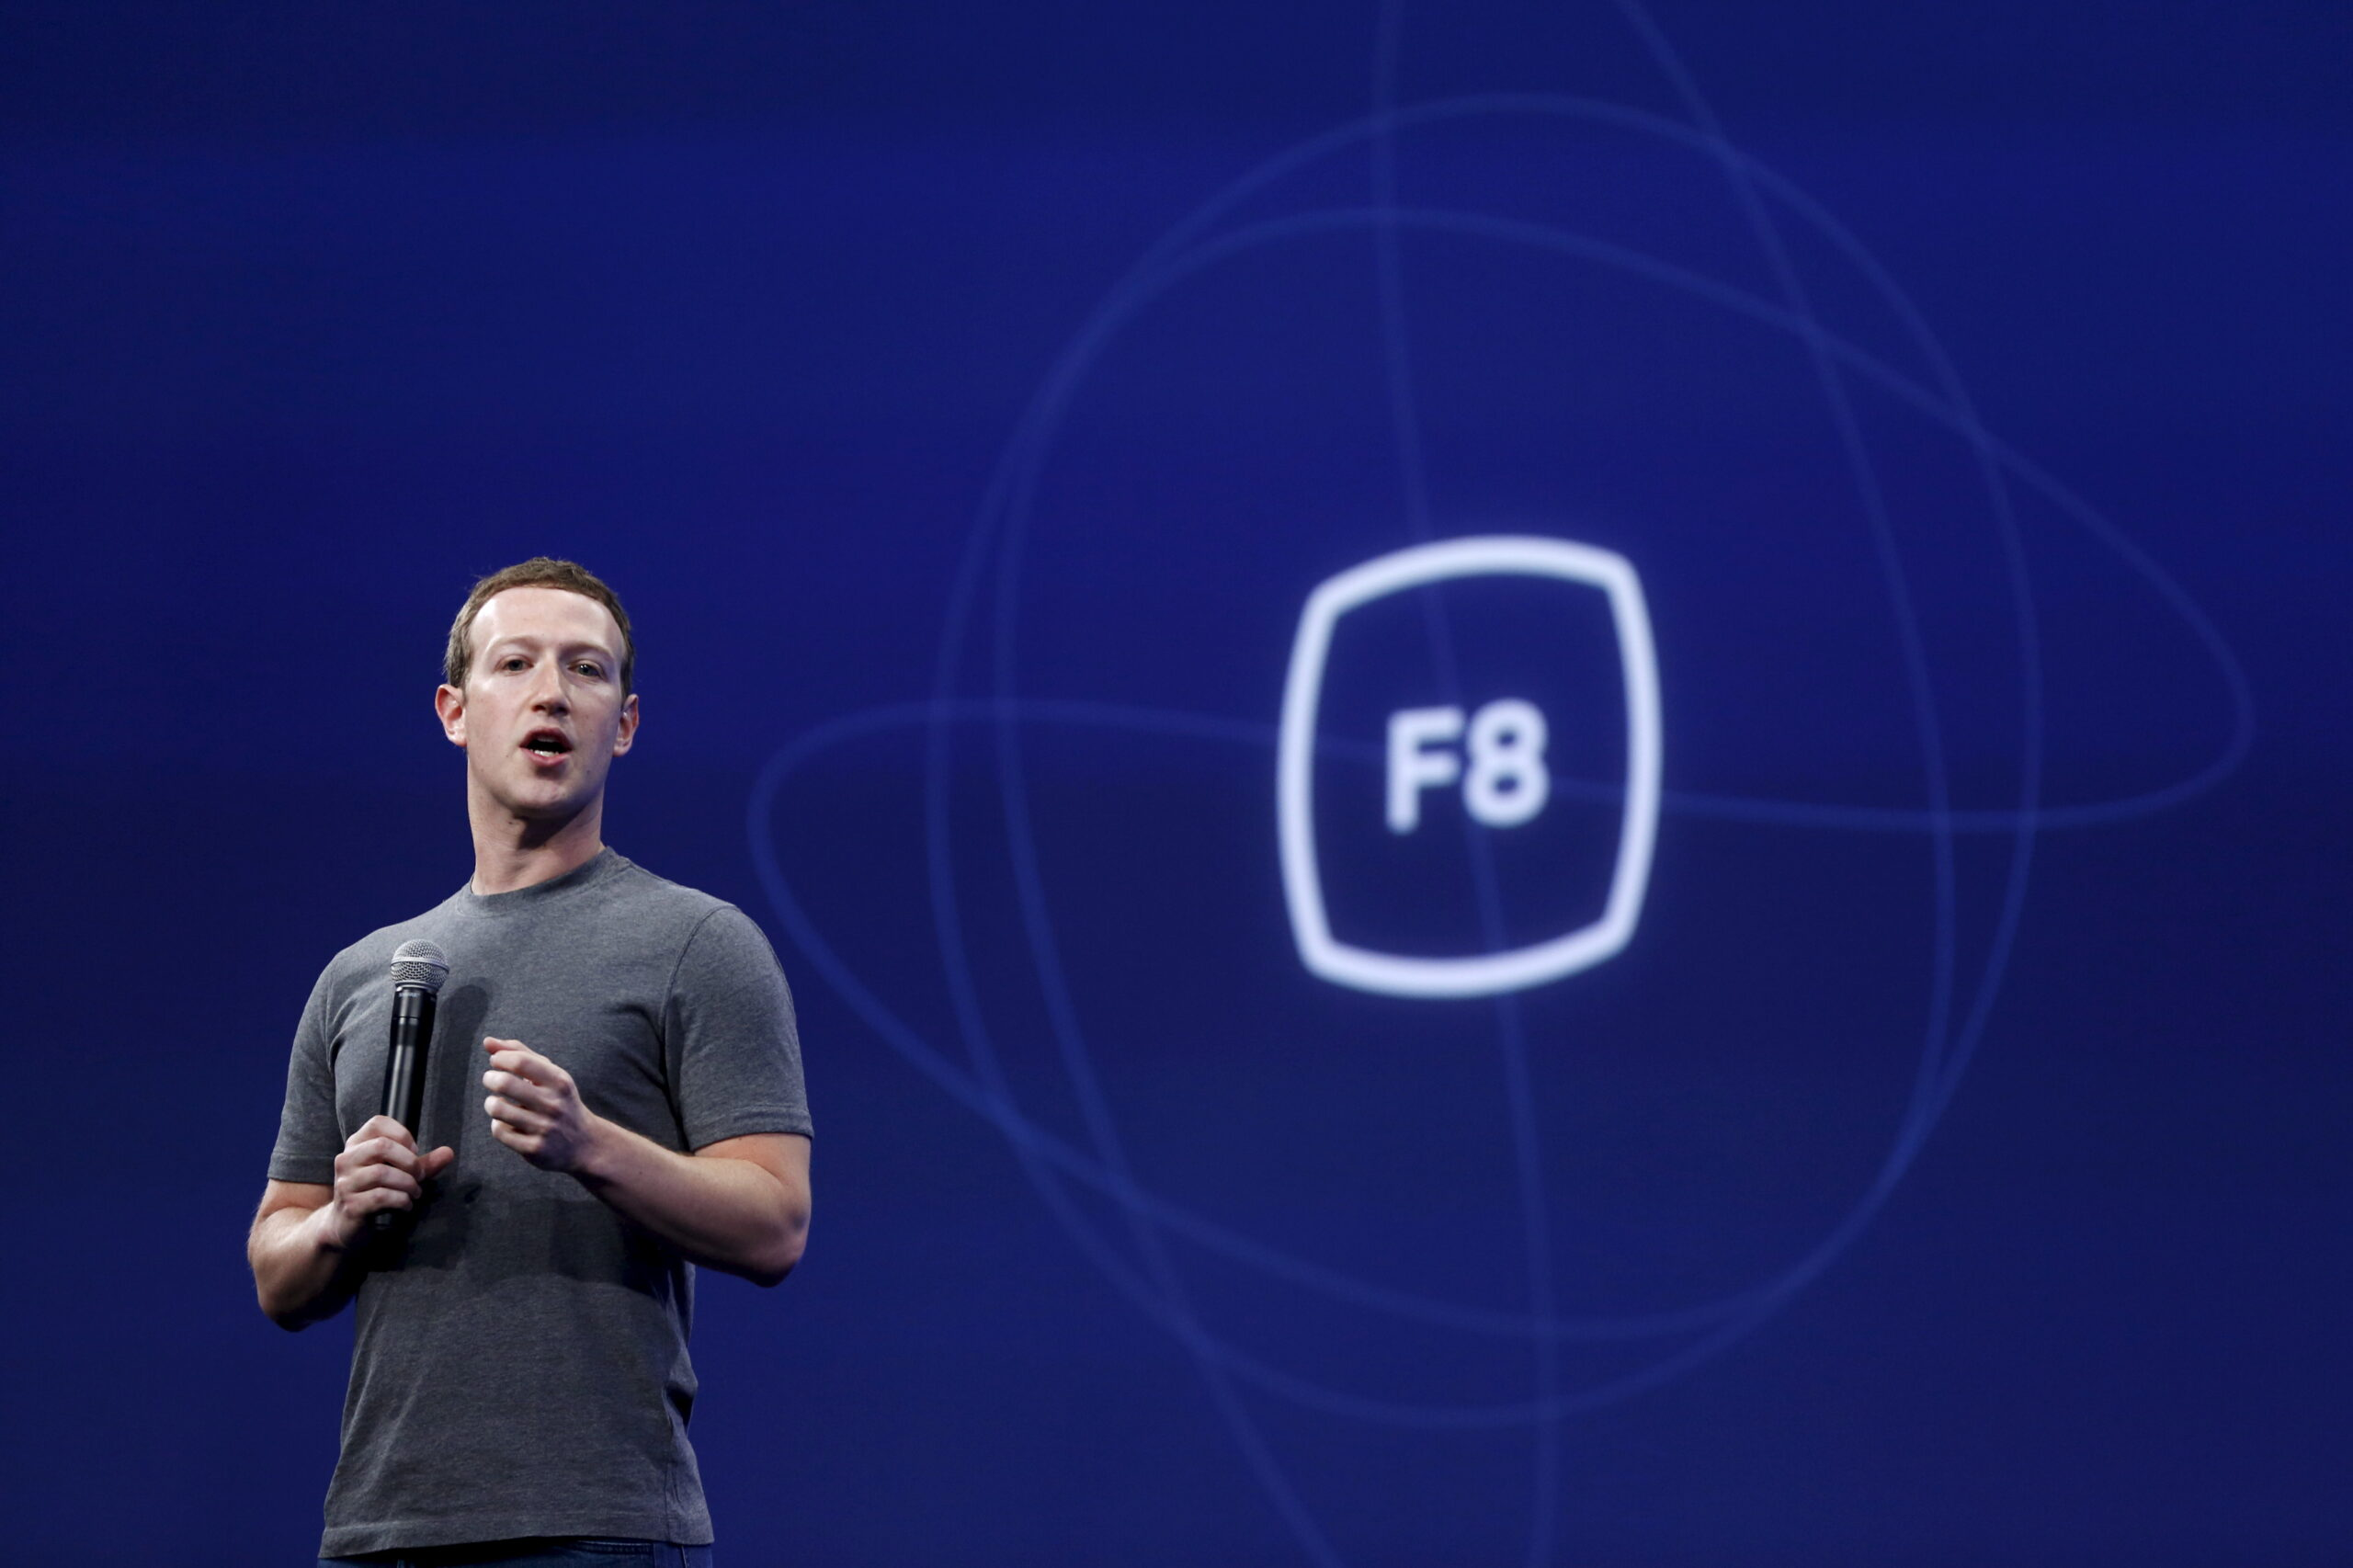 Facebook's F8 event will return, but online-only and without Zuckerberg